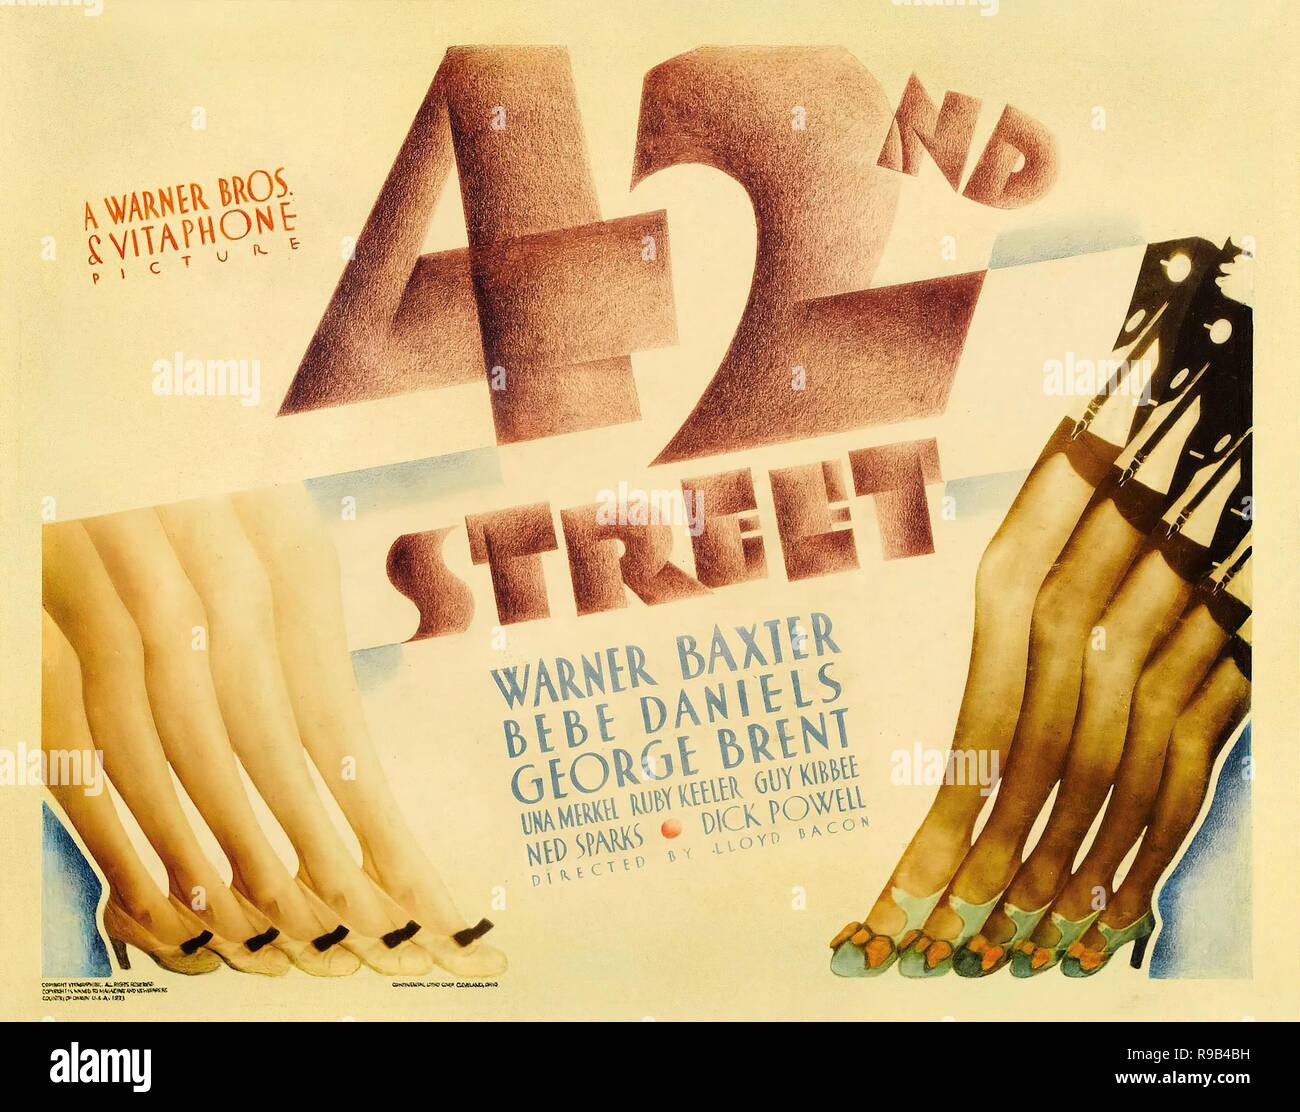 Original film title: 42ND STREET. English title: 42ND STREET. Year: 1933. Director: LLOYD BACON. Credit: WARNER BROTHERS / Album - Stock Image